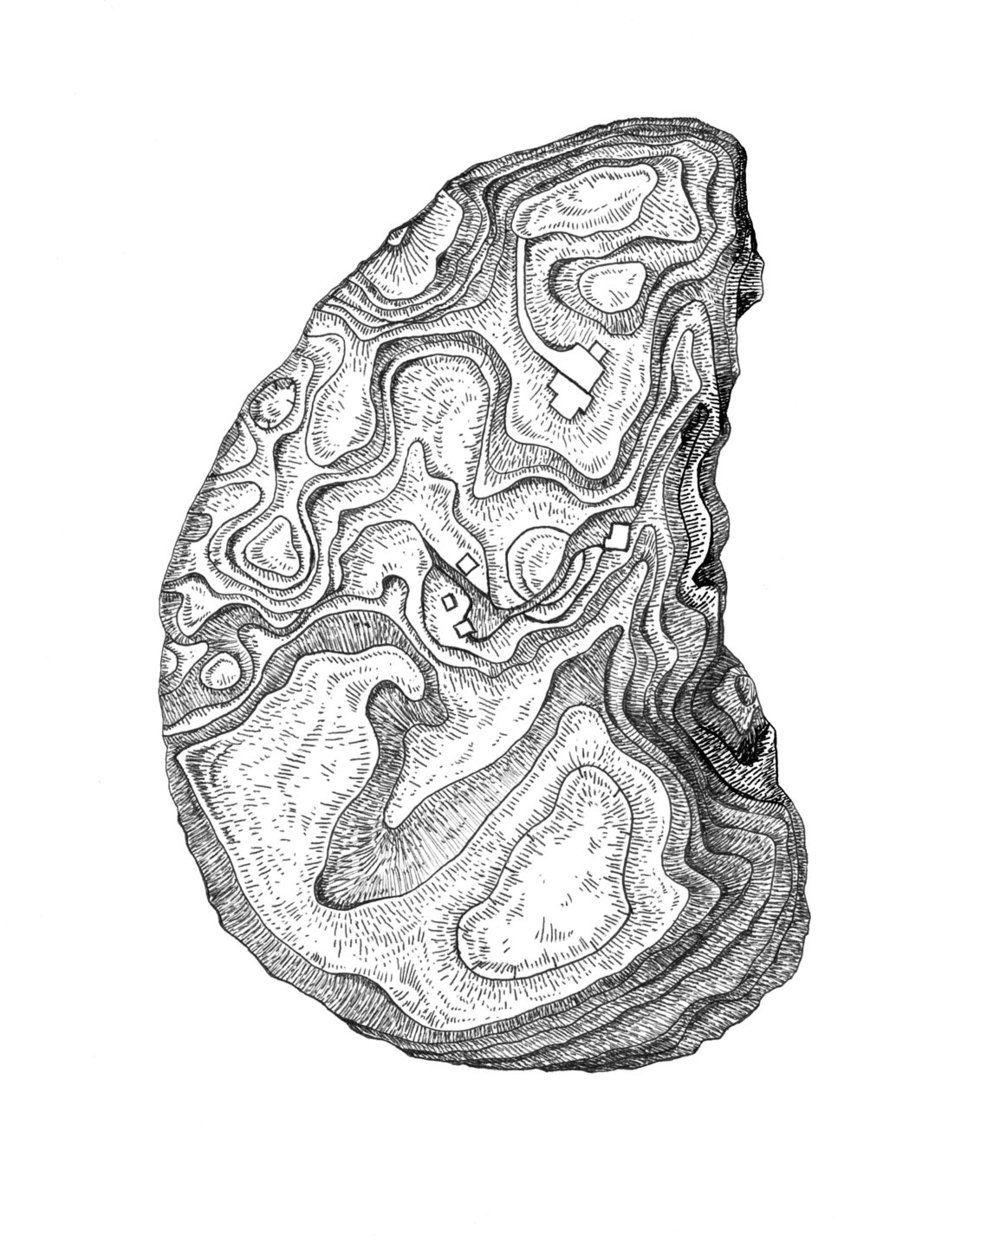 Quail Hill Oyster    ink and digital, 2016  Tattoo design incorporating topographical features of Quail Hill Farm into the shape and texture of an oyster.